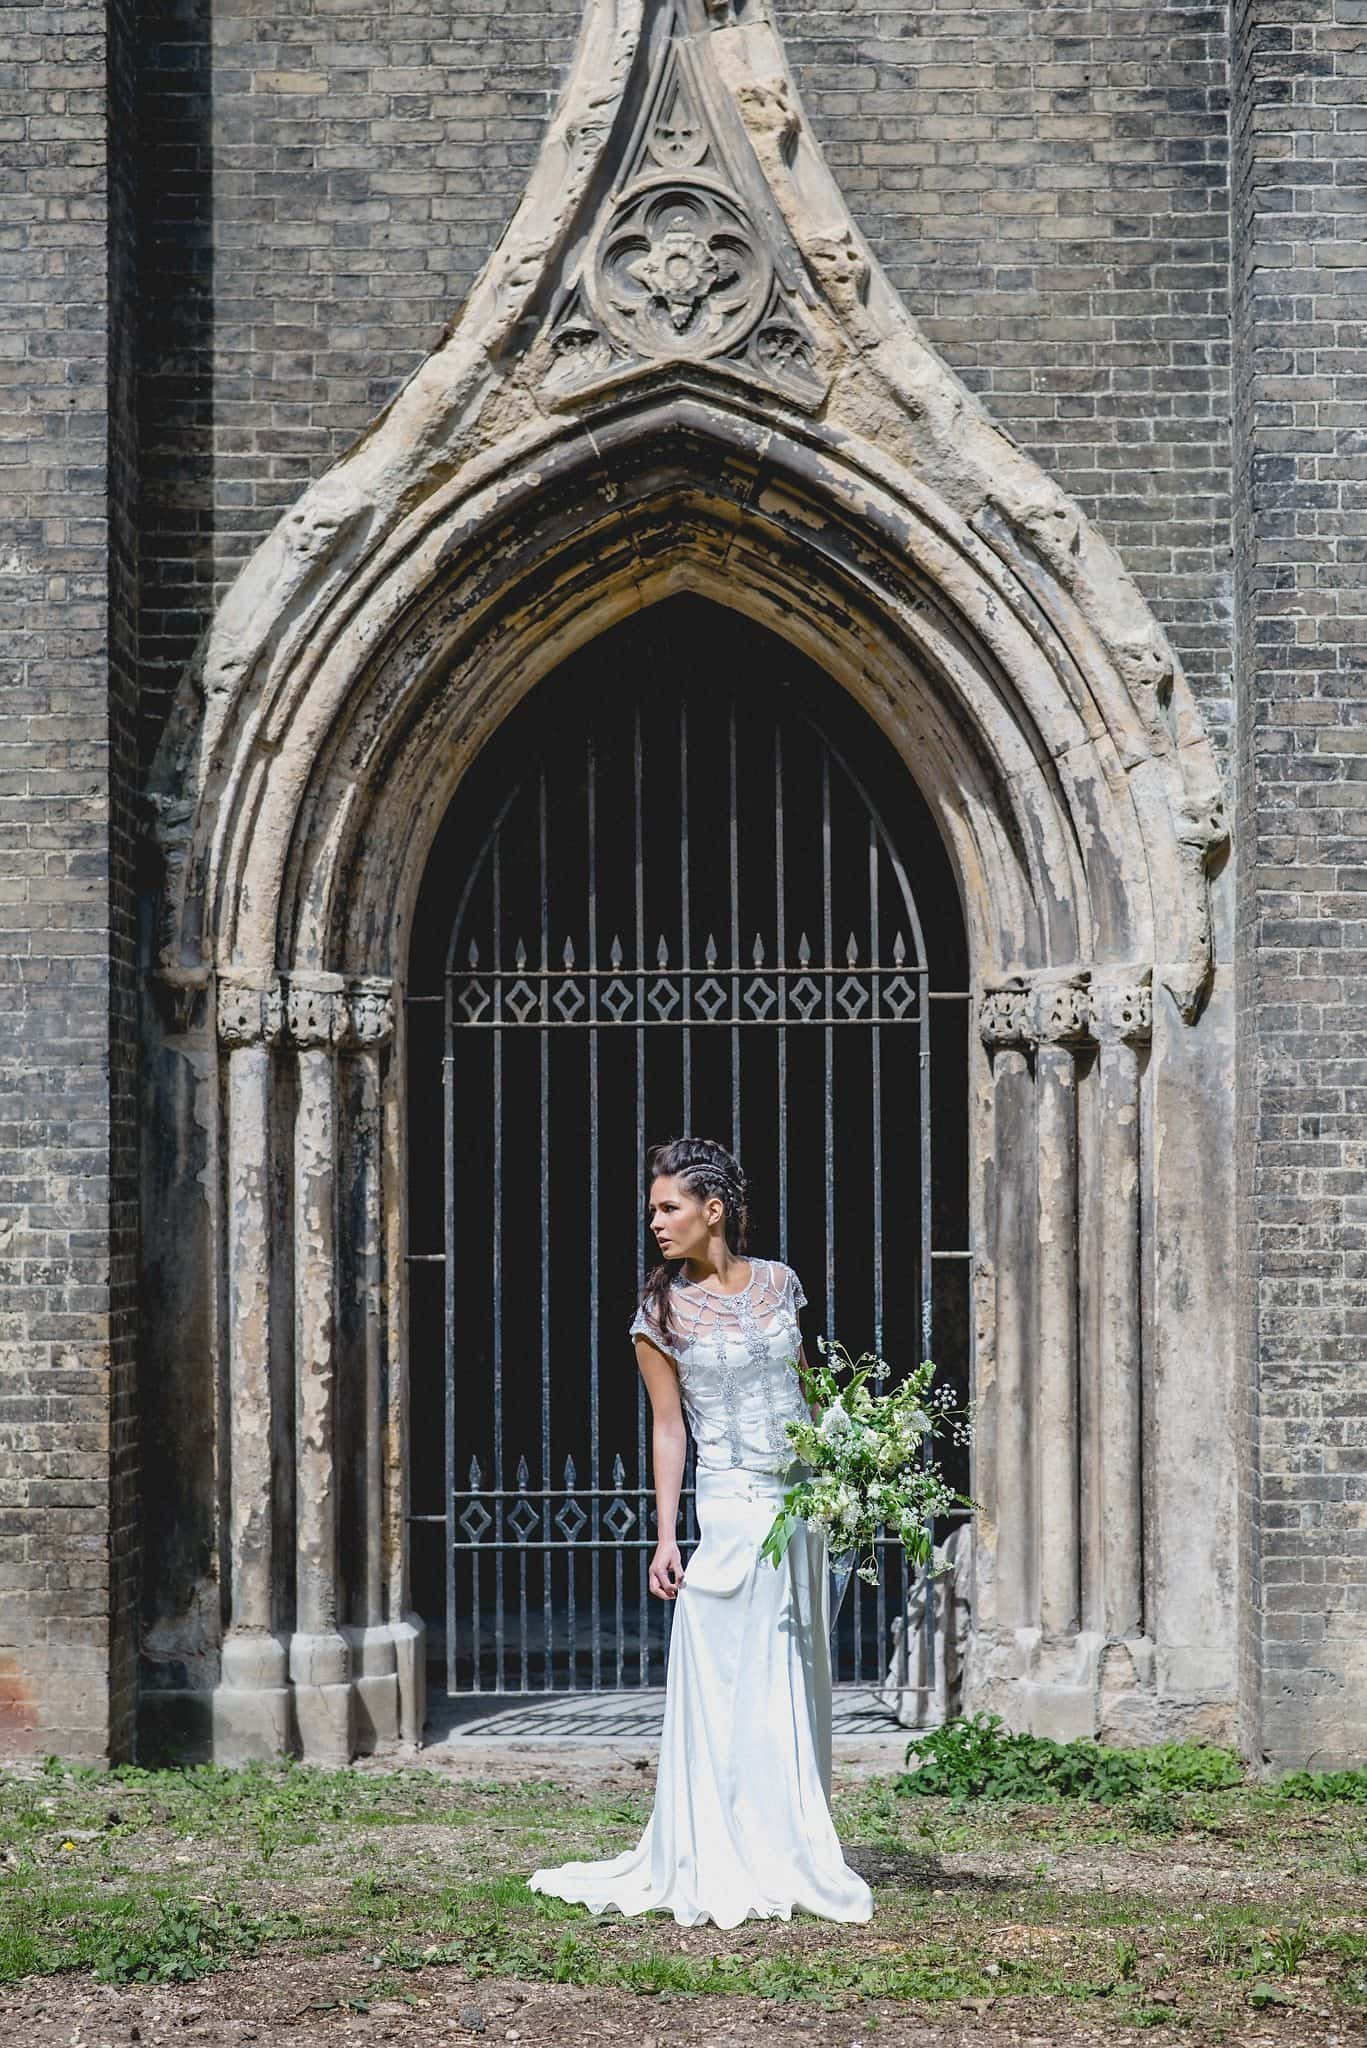 Bridal portrait in front of the entrance arch holding large bouquet of wild flowers